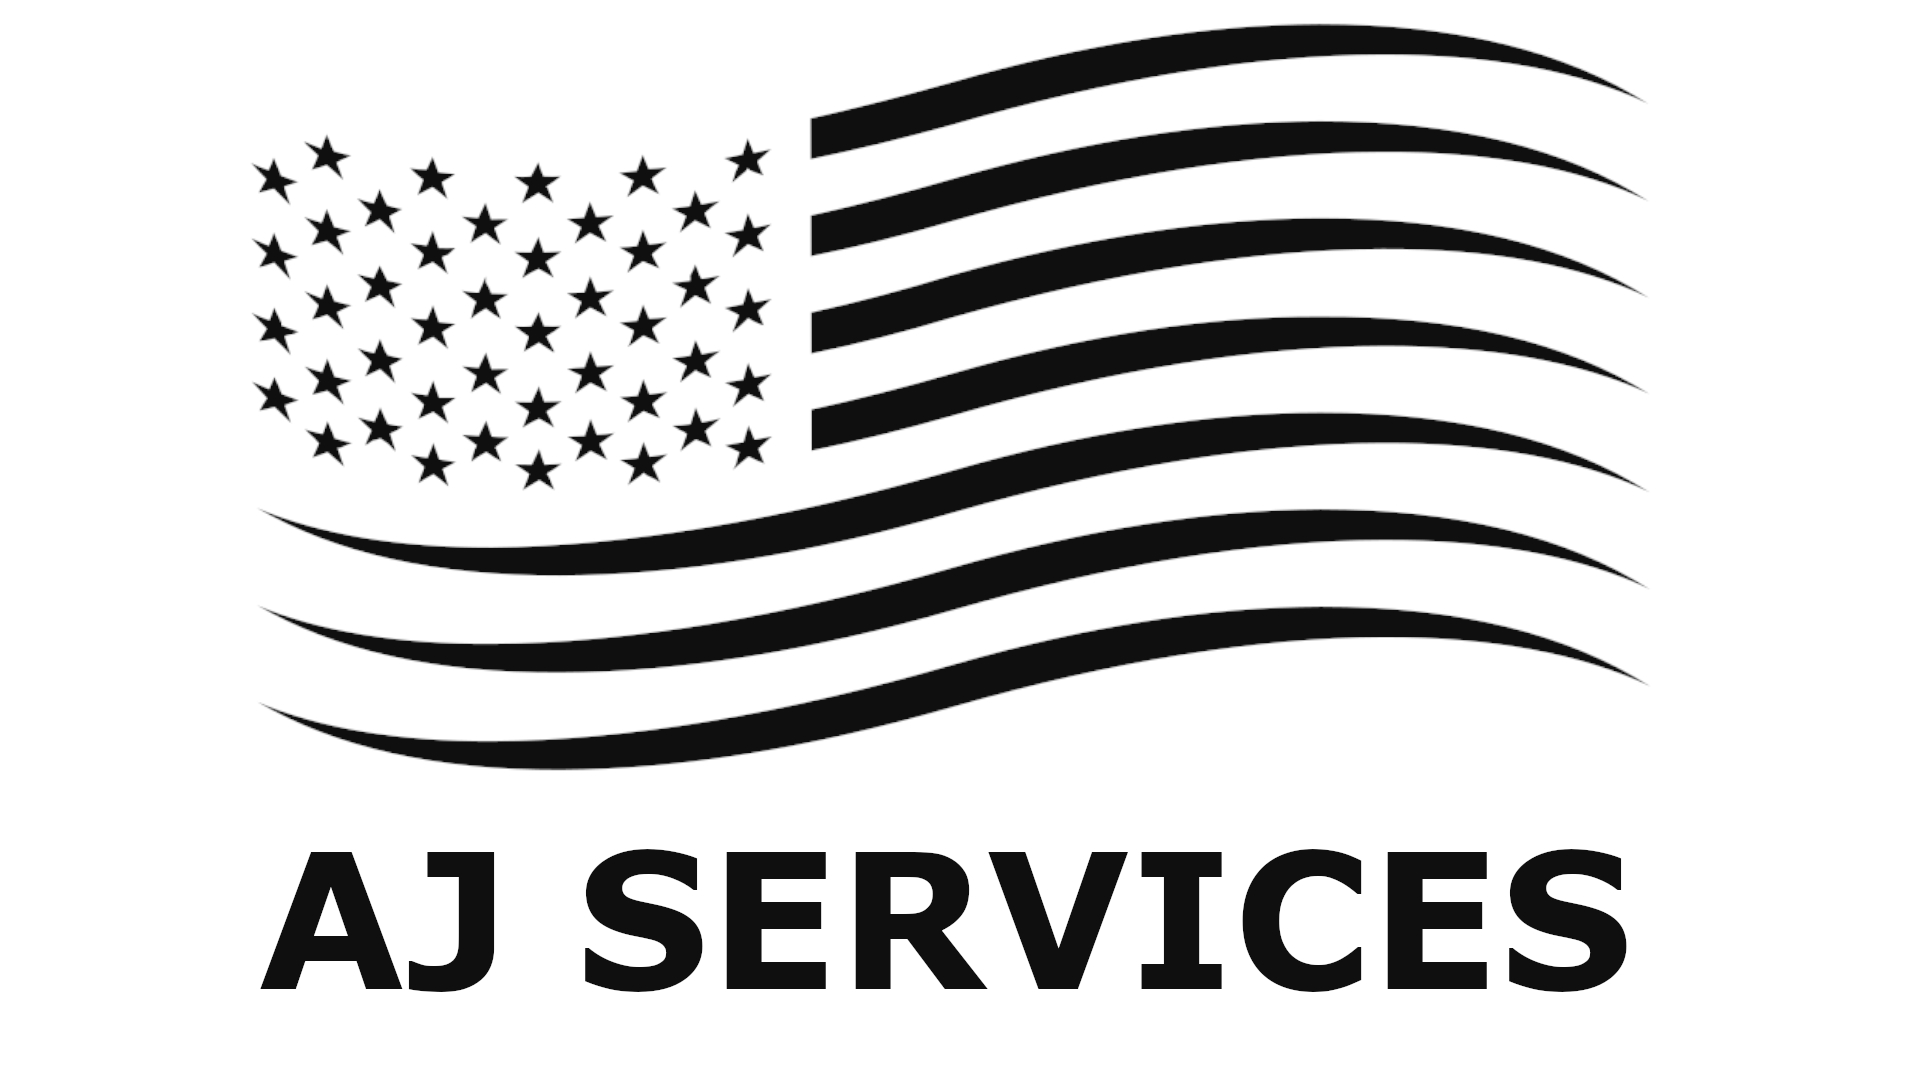 ajservices